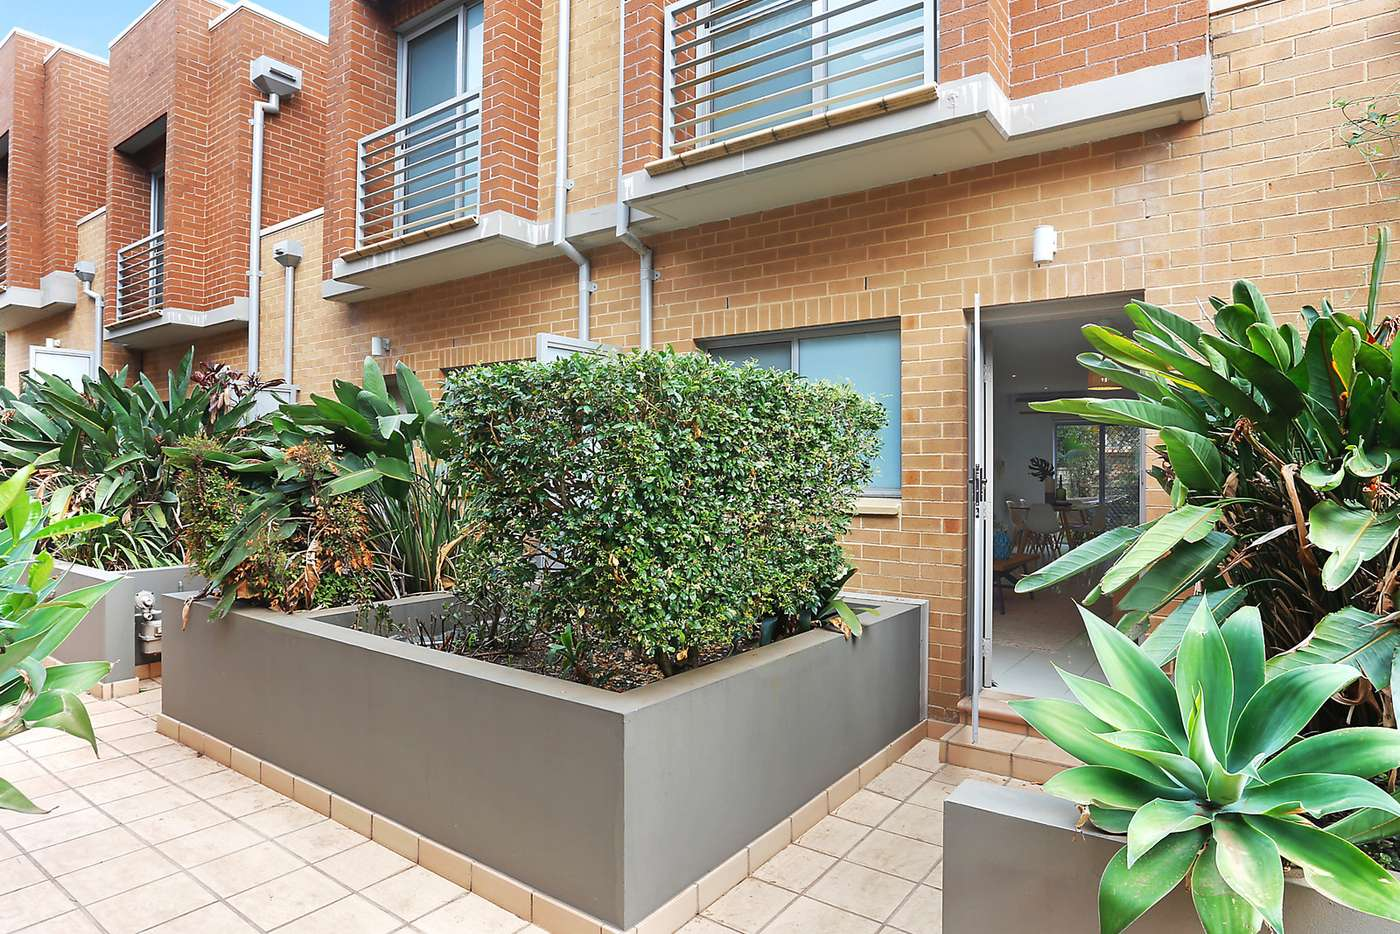 Main view of Homely townhouse listing, 4/53 West Street, Hurstville NSW 2220